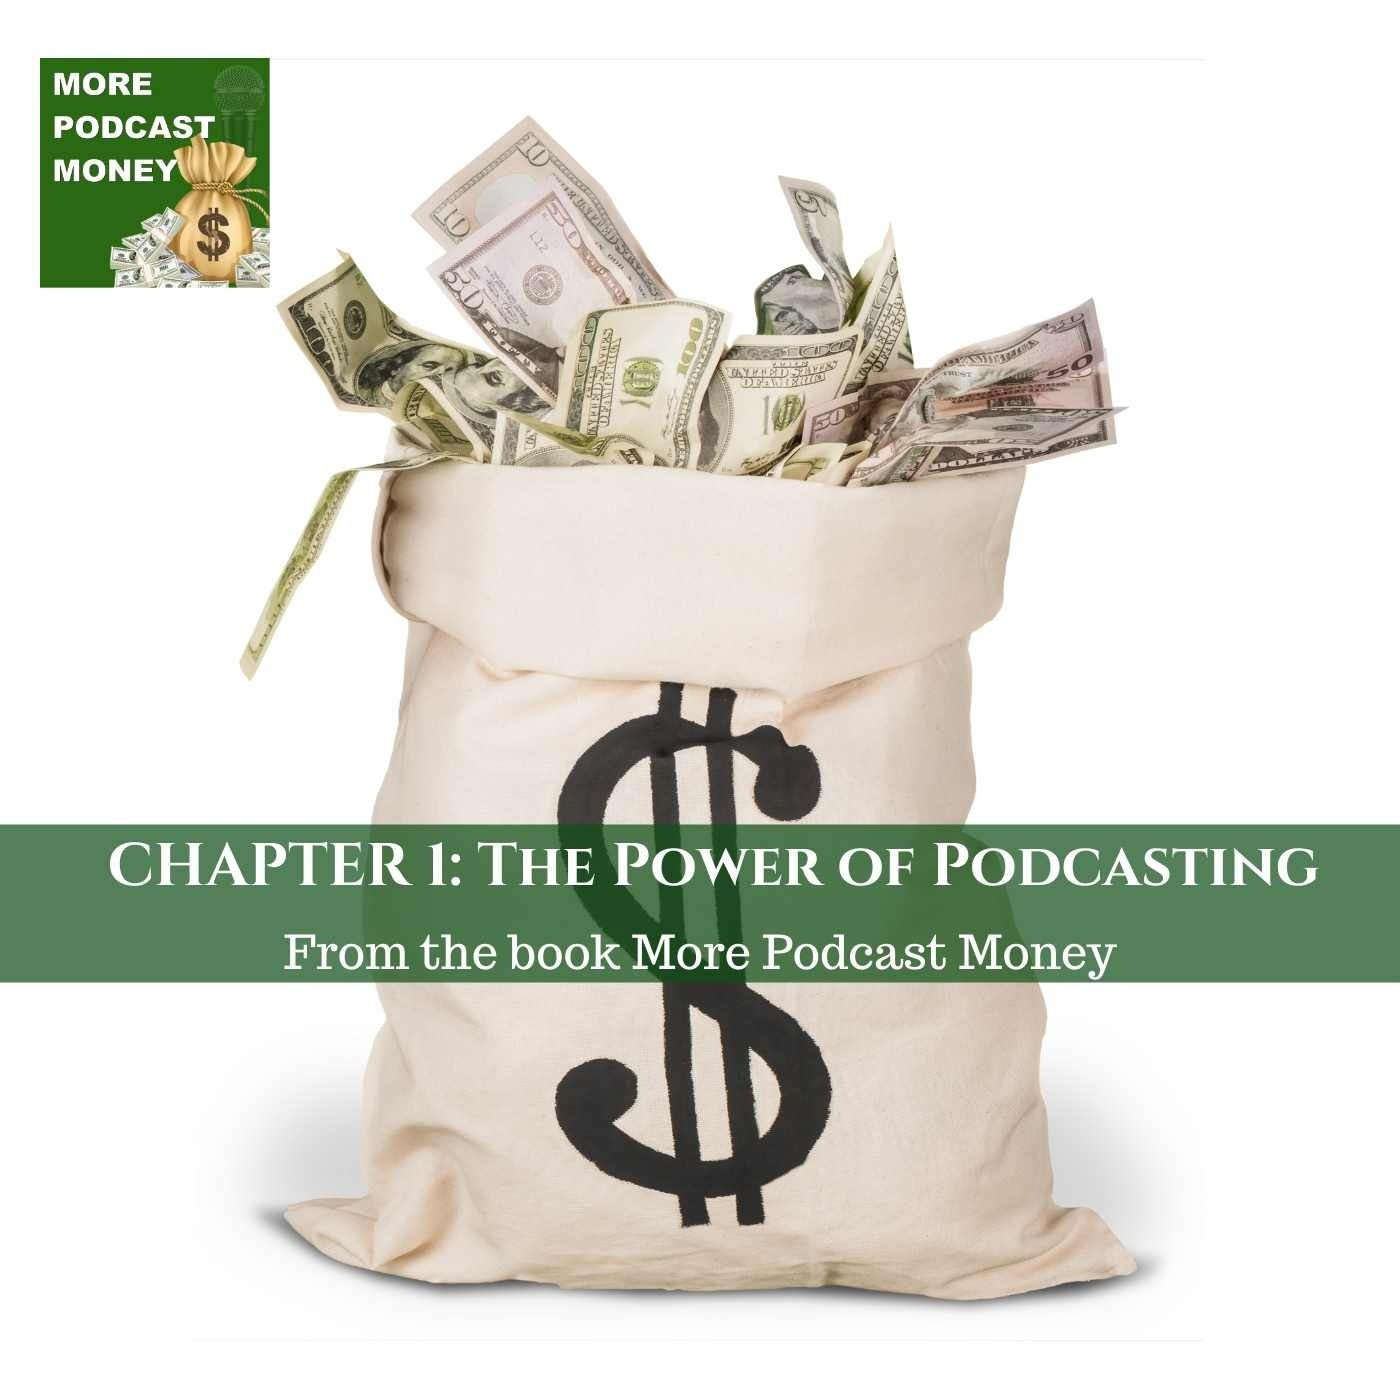 Chapter 1: The Power Of Podcasting